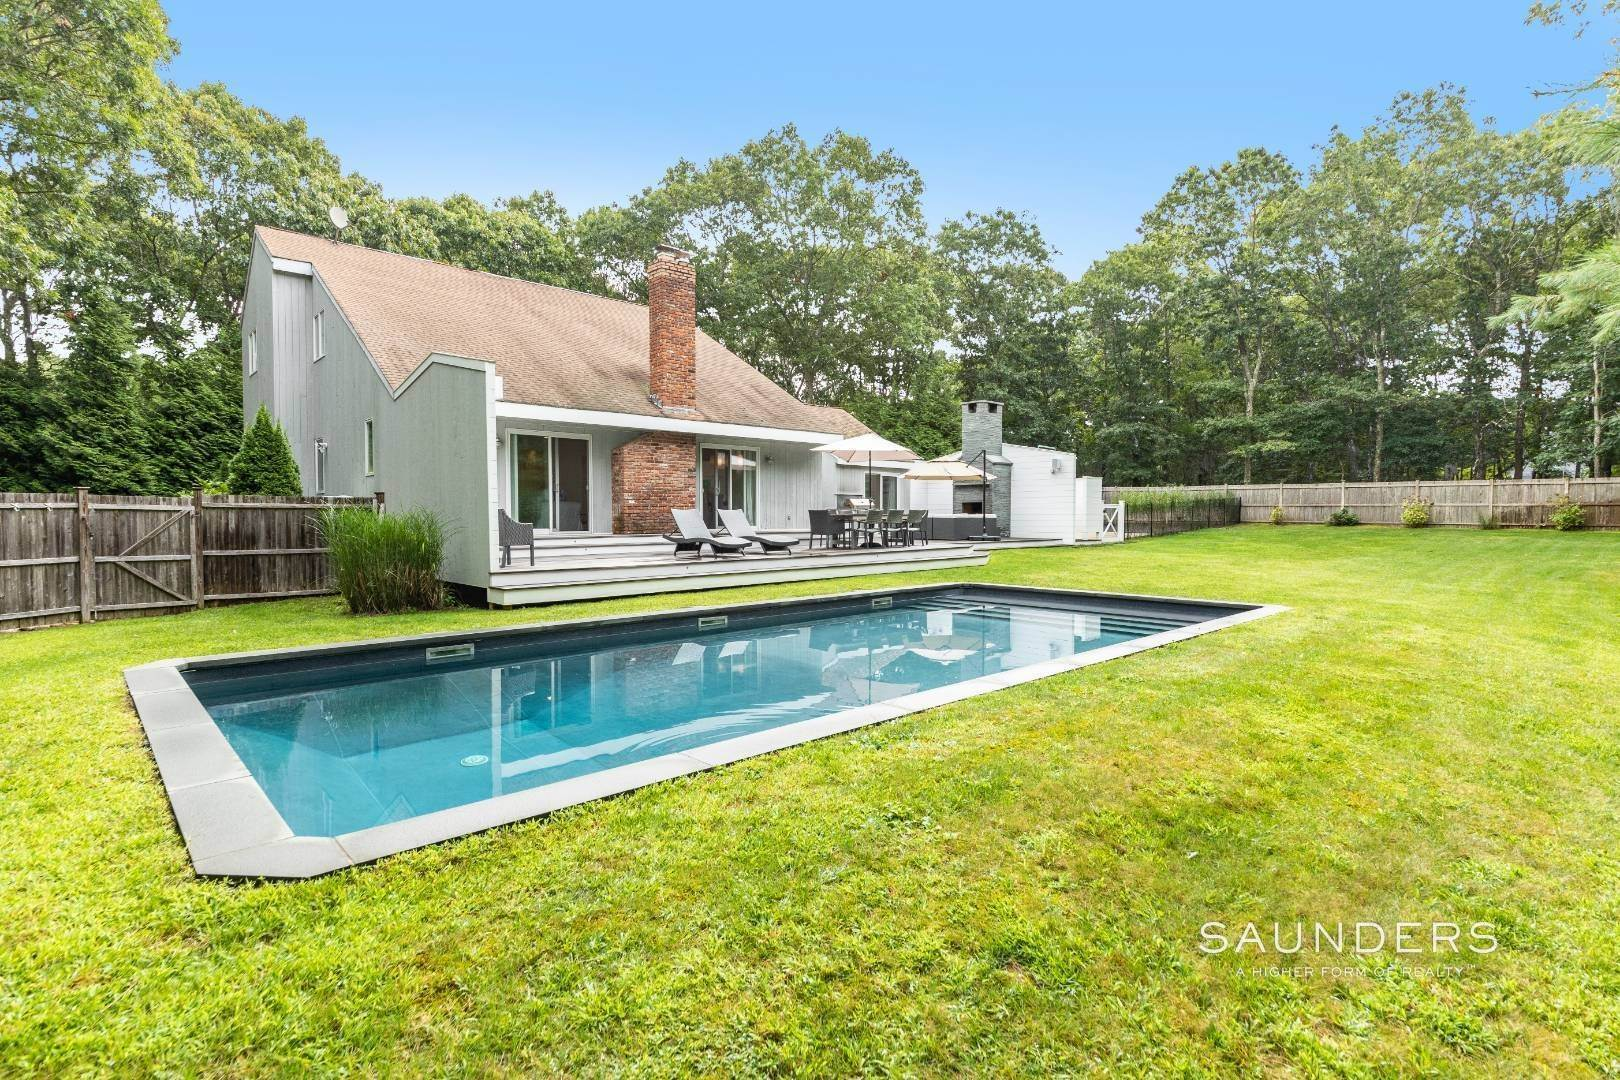 Single Family Homes for Sale at Modern Saltbox In Wainscott 1 Red Fox Lane, Wainscott, East Hampton Town, NY 11937